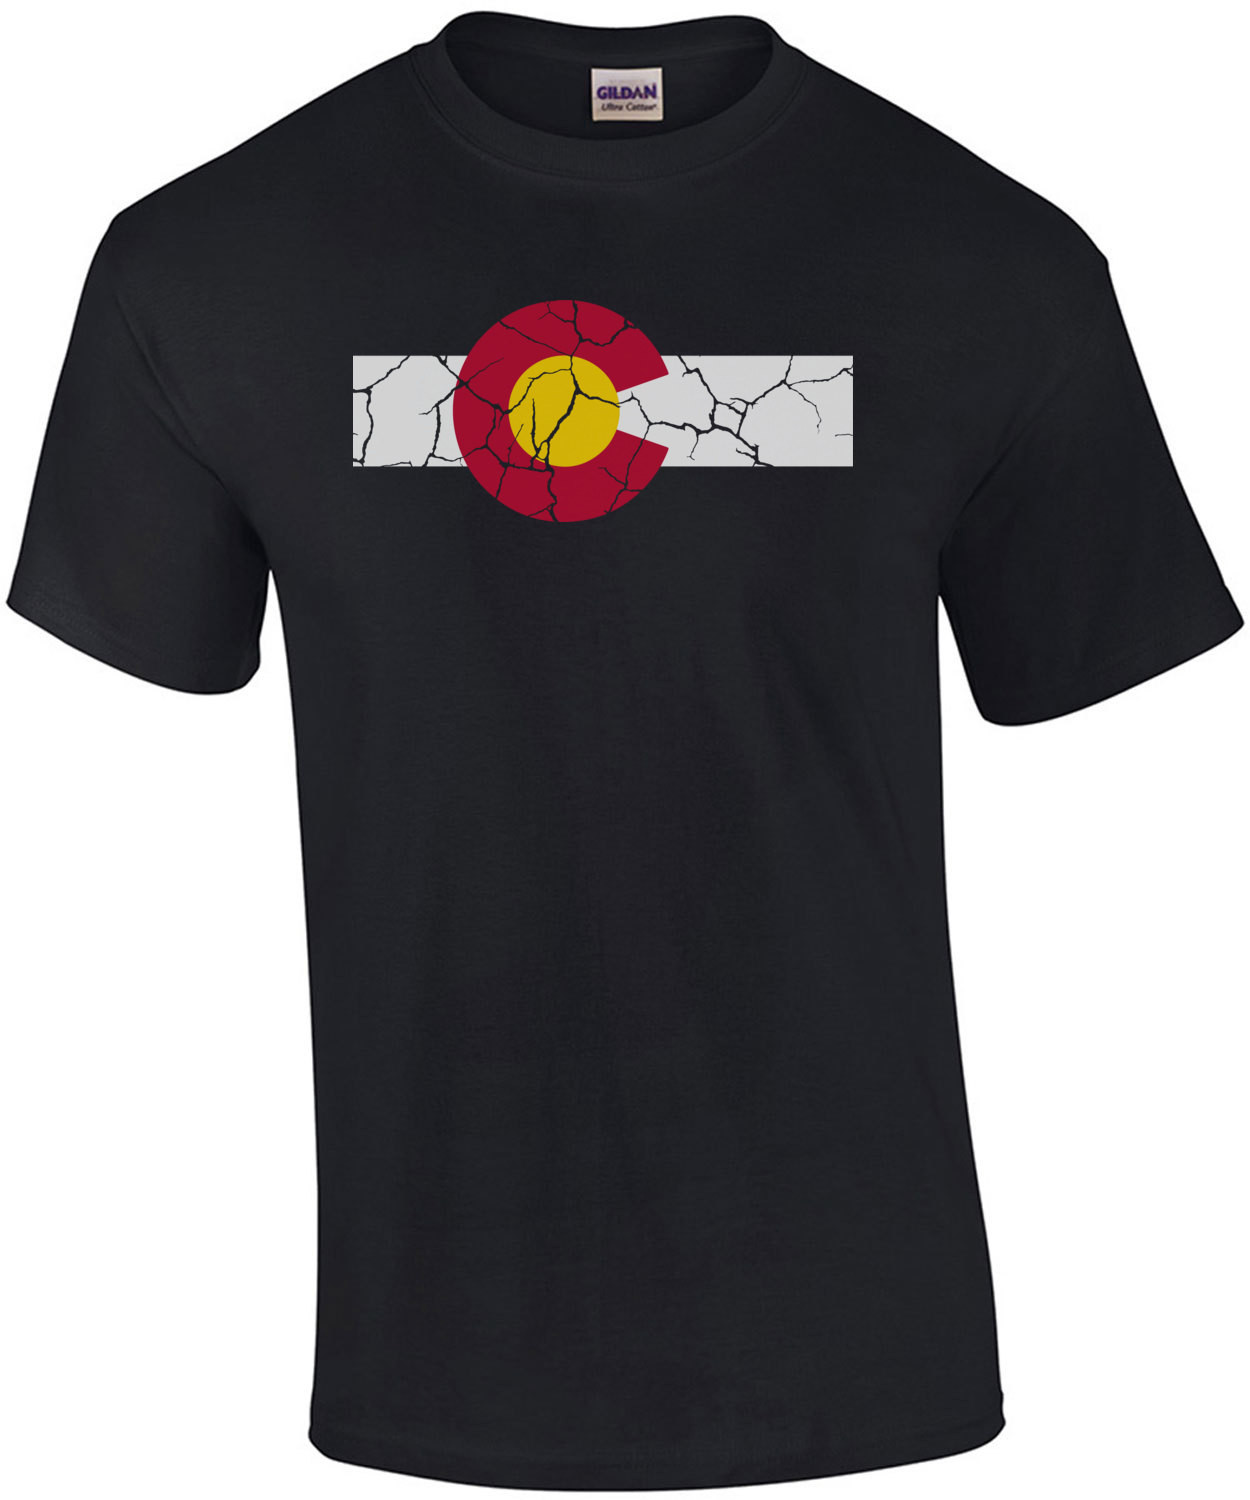 C - Colorado T-Shirt